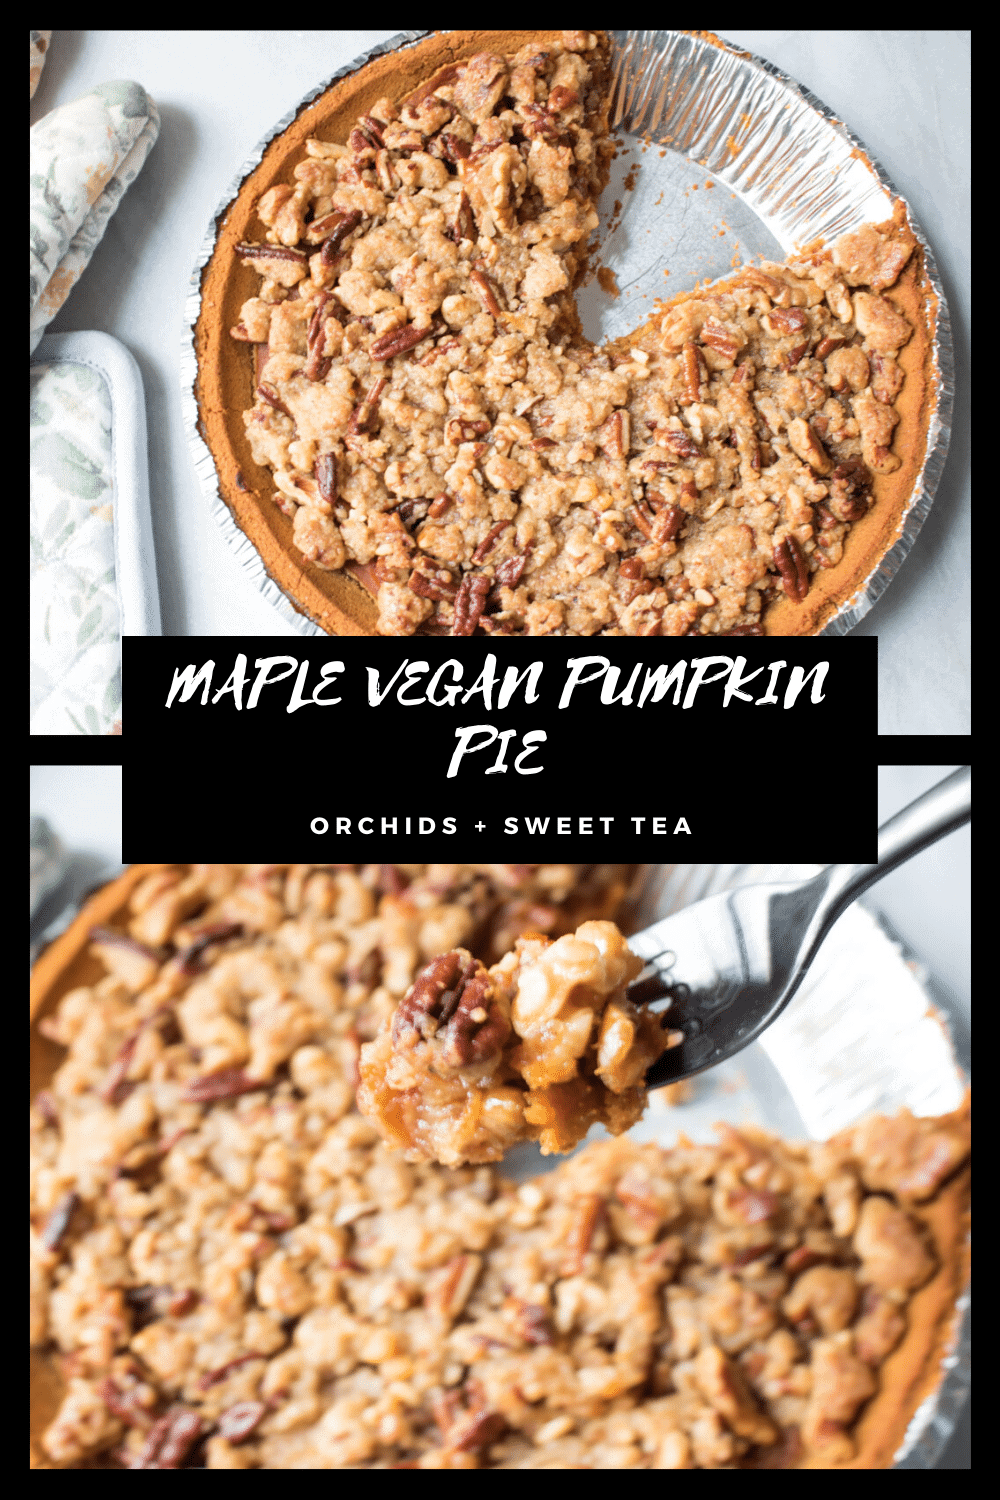 MAPLE VEGAN PUMPKIN PIE